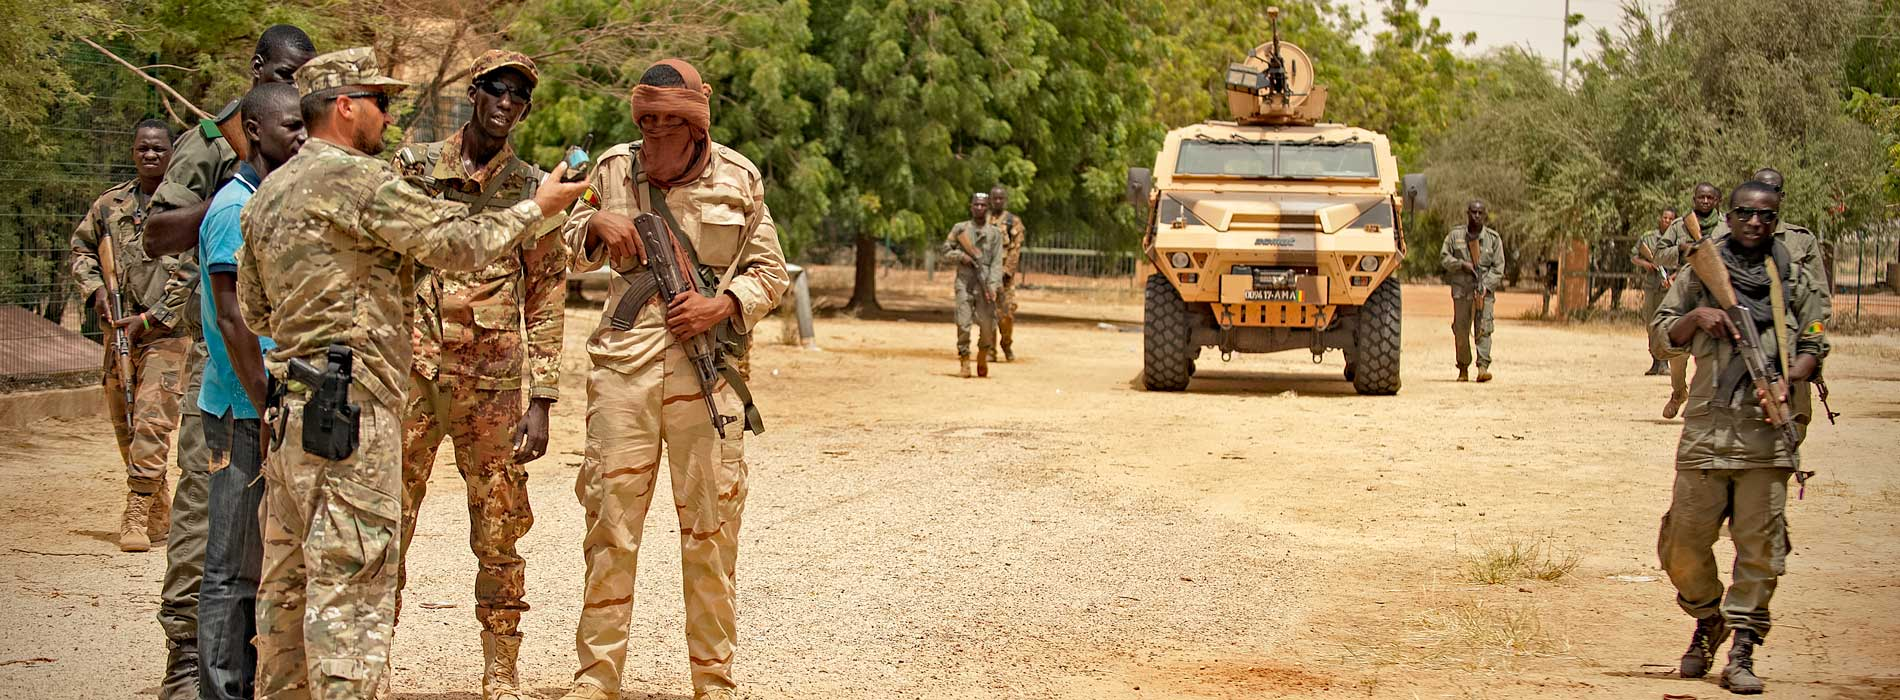 EUTM MALI CONDUCTS TAILOR-MADE TRAINING IN TIMBUKTU